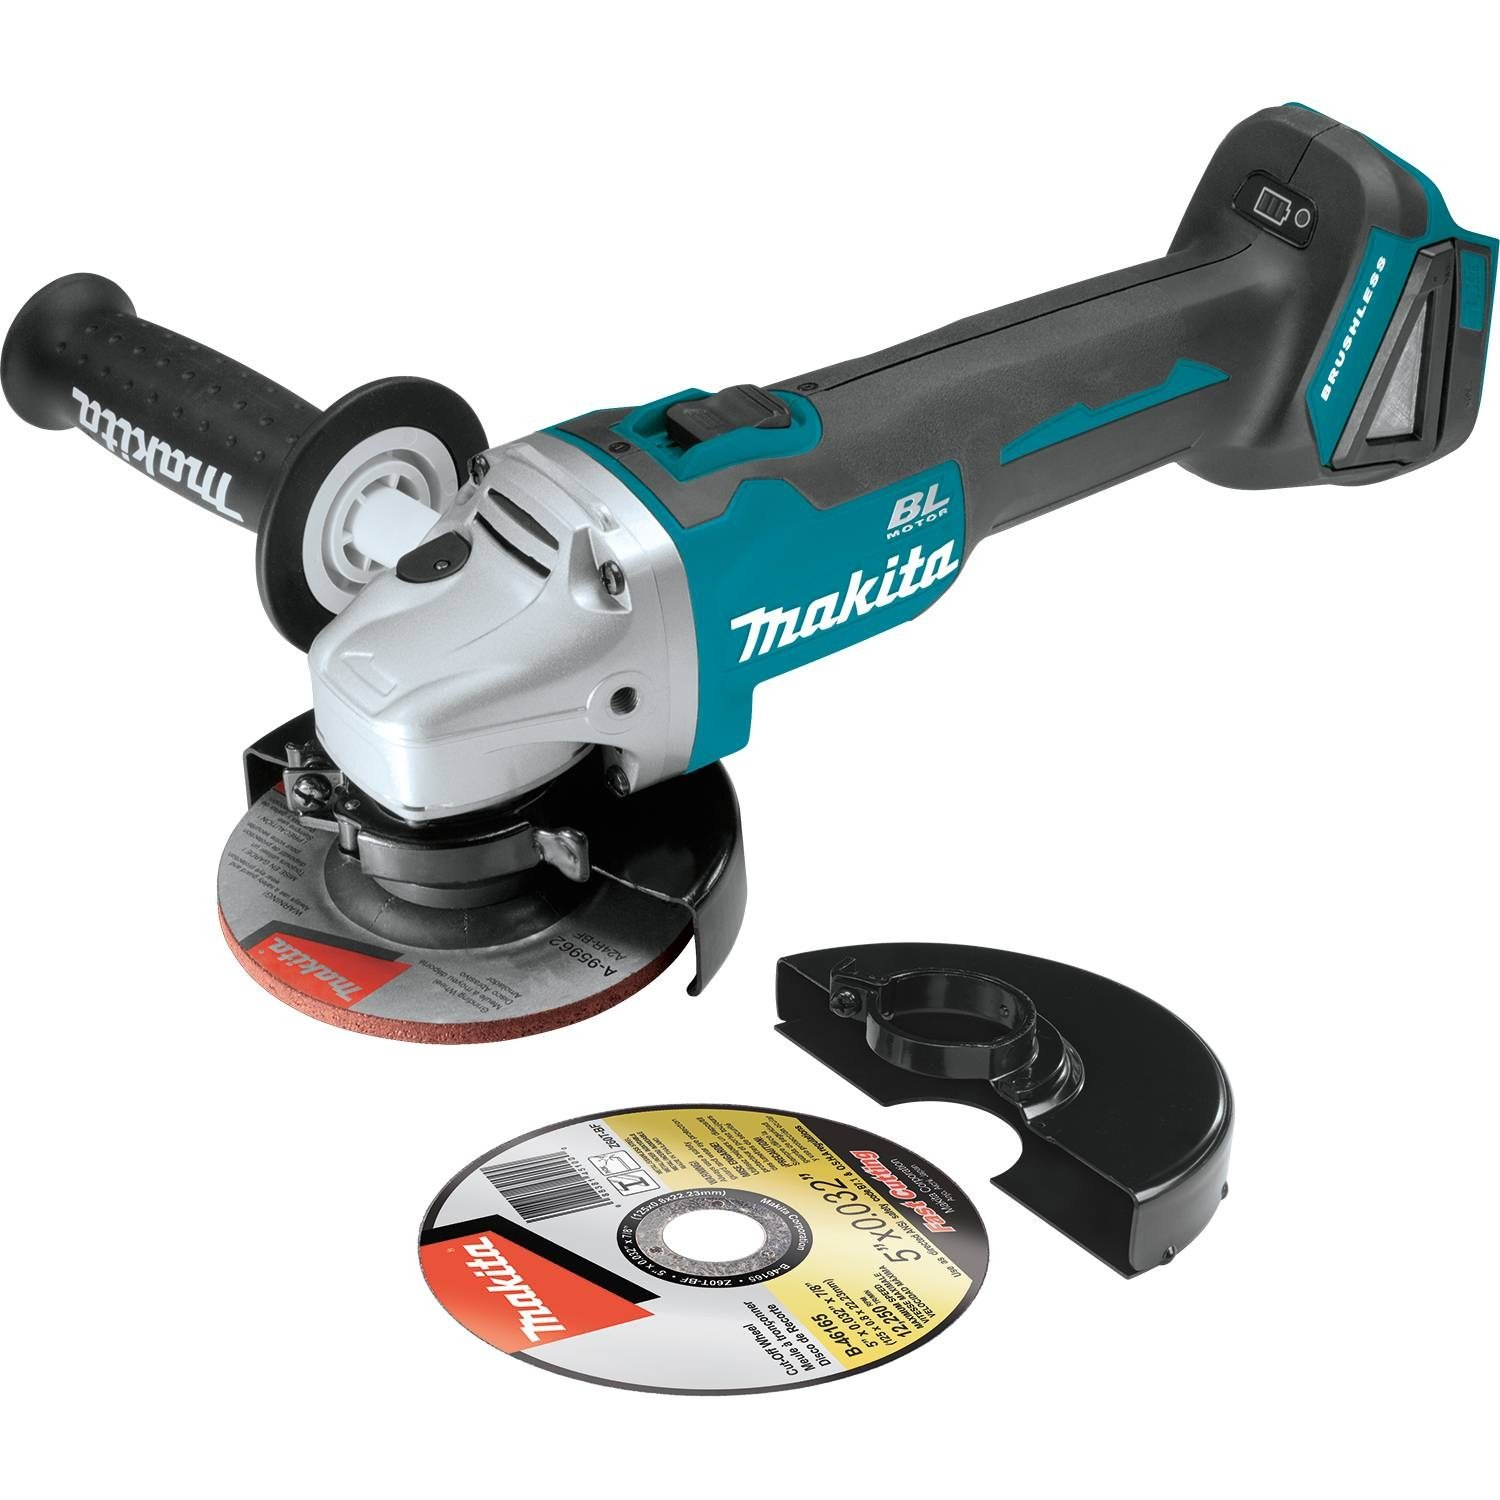 "Makita XAG04Z 18V LXT Lithium-Ion Brushless Cordless 4-1/2"" / 5"" Cut-Off/Angle Grinder, Tool Only"